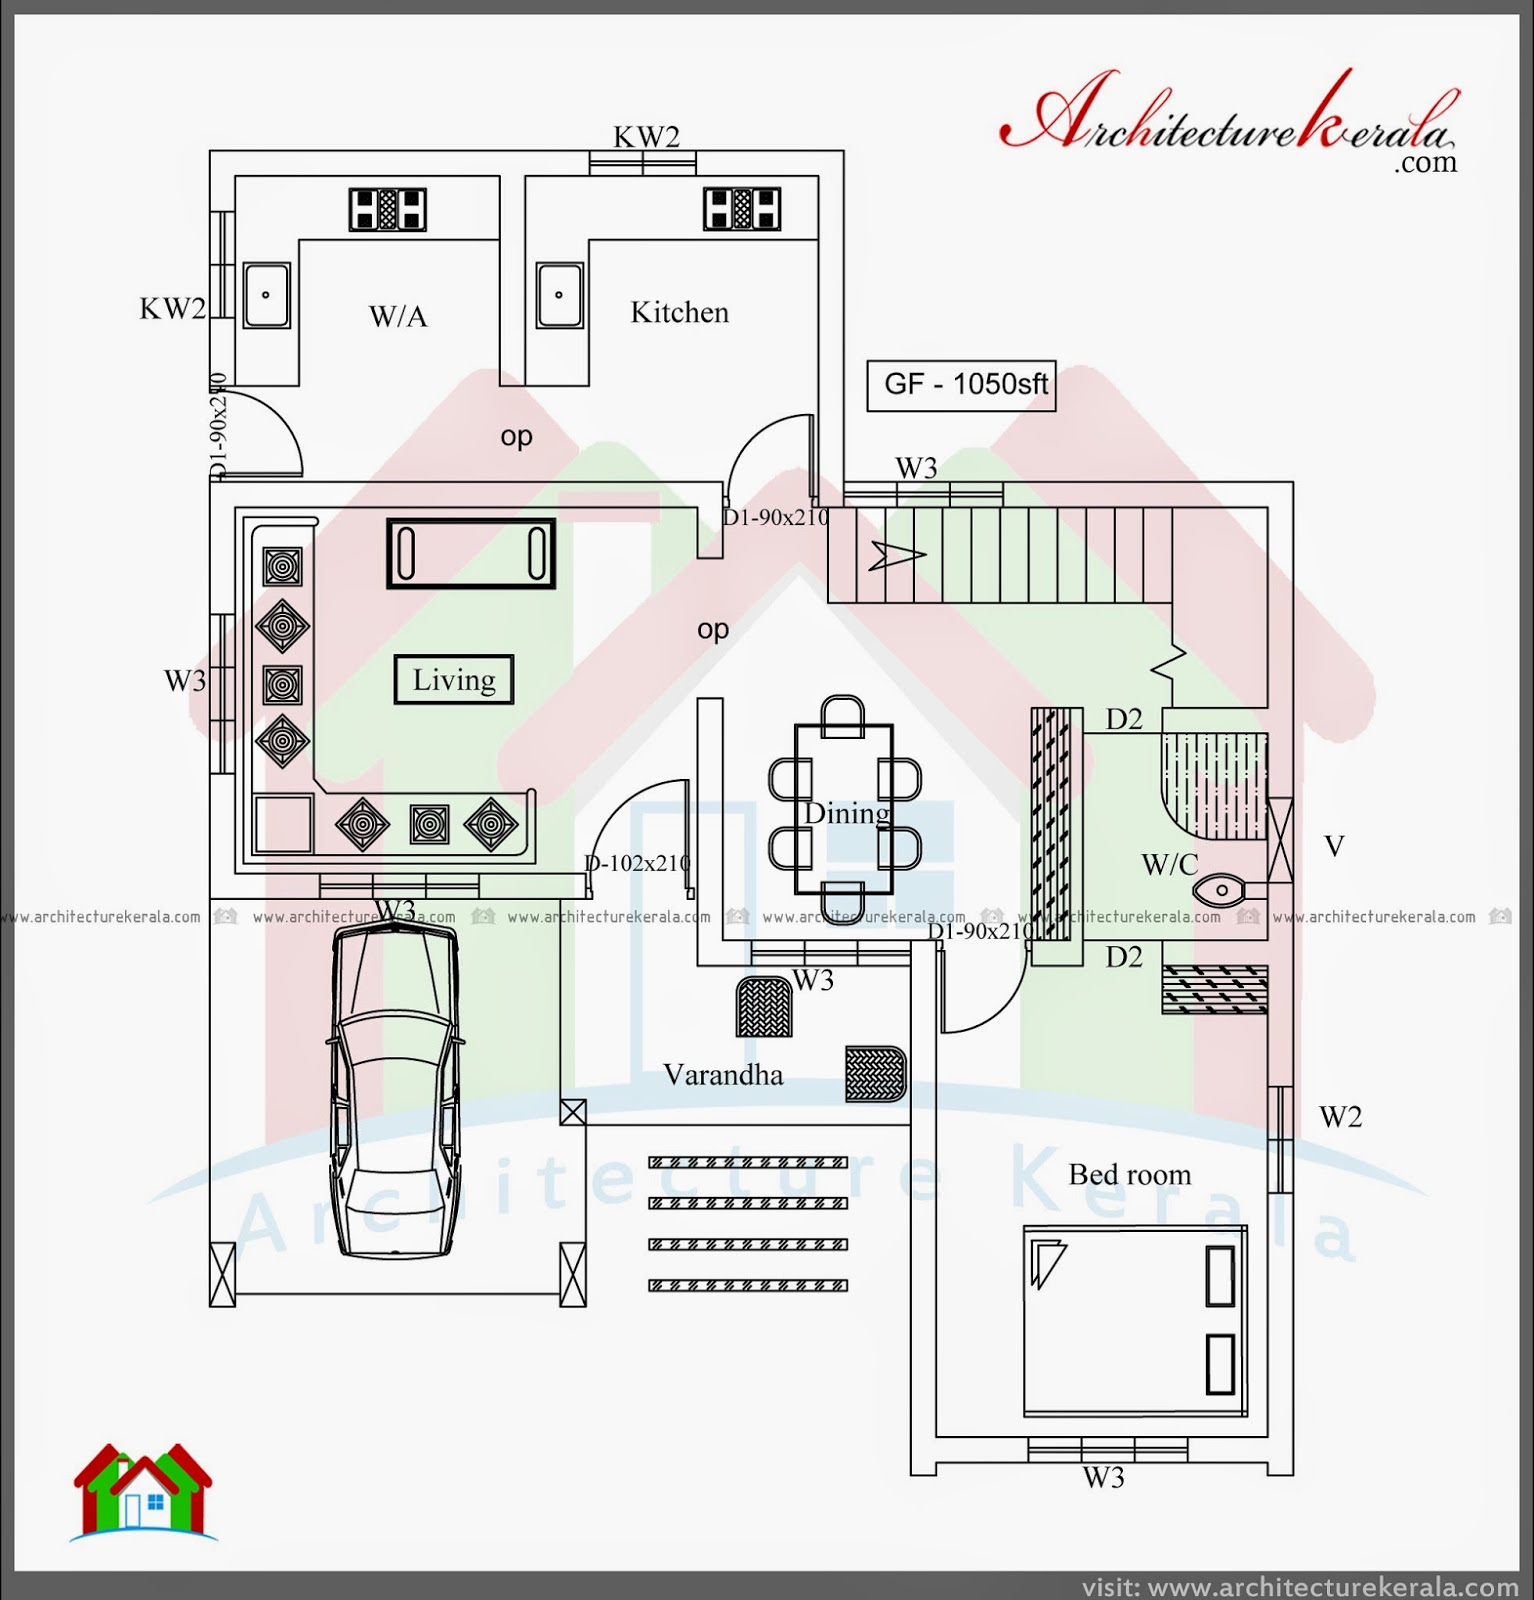 Three bedroom two storey house plan architecture kerala for 2 storey house plans